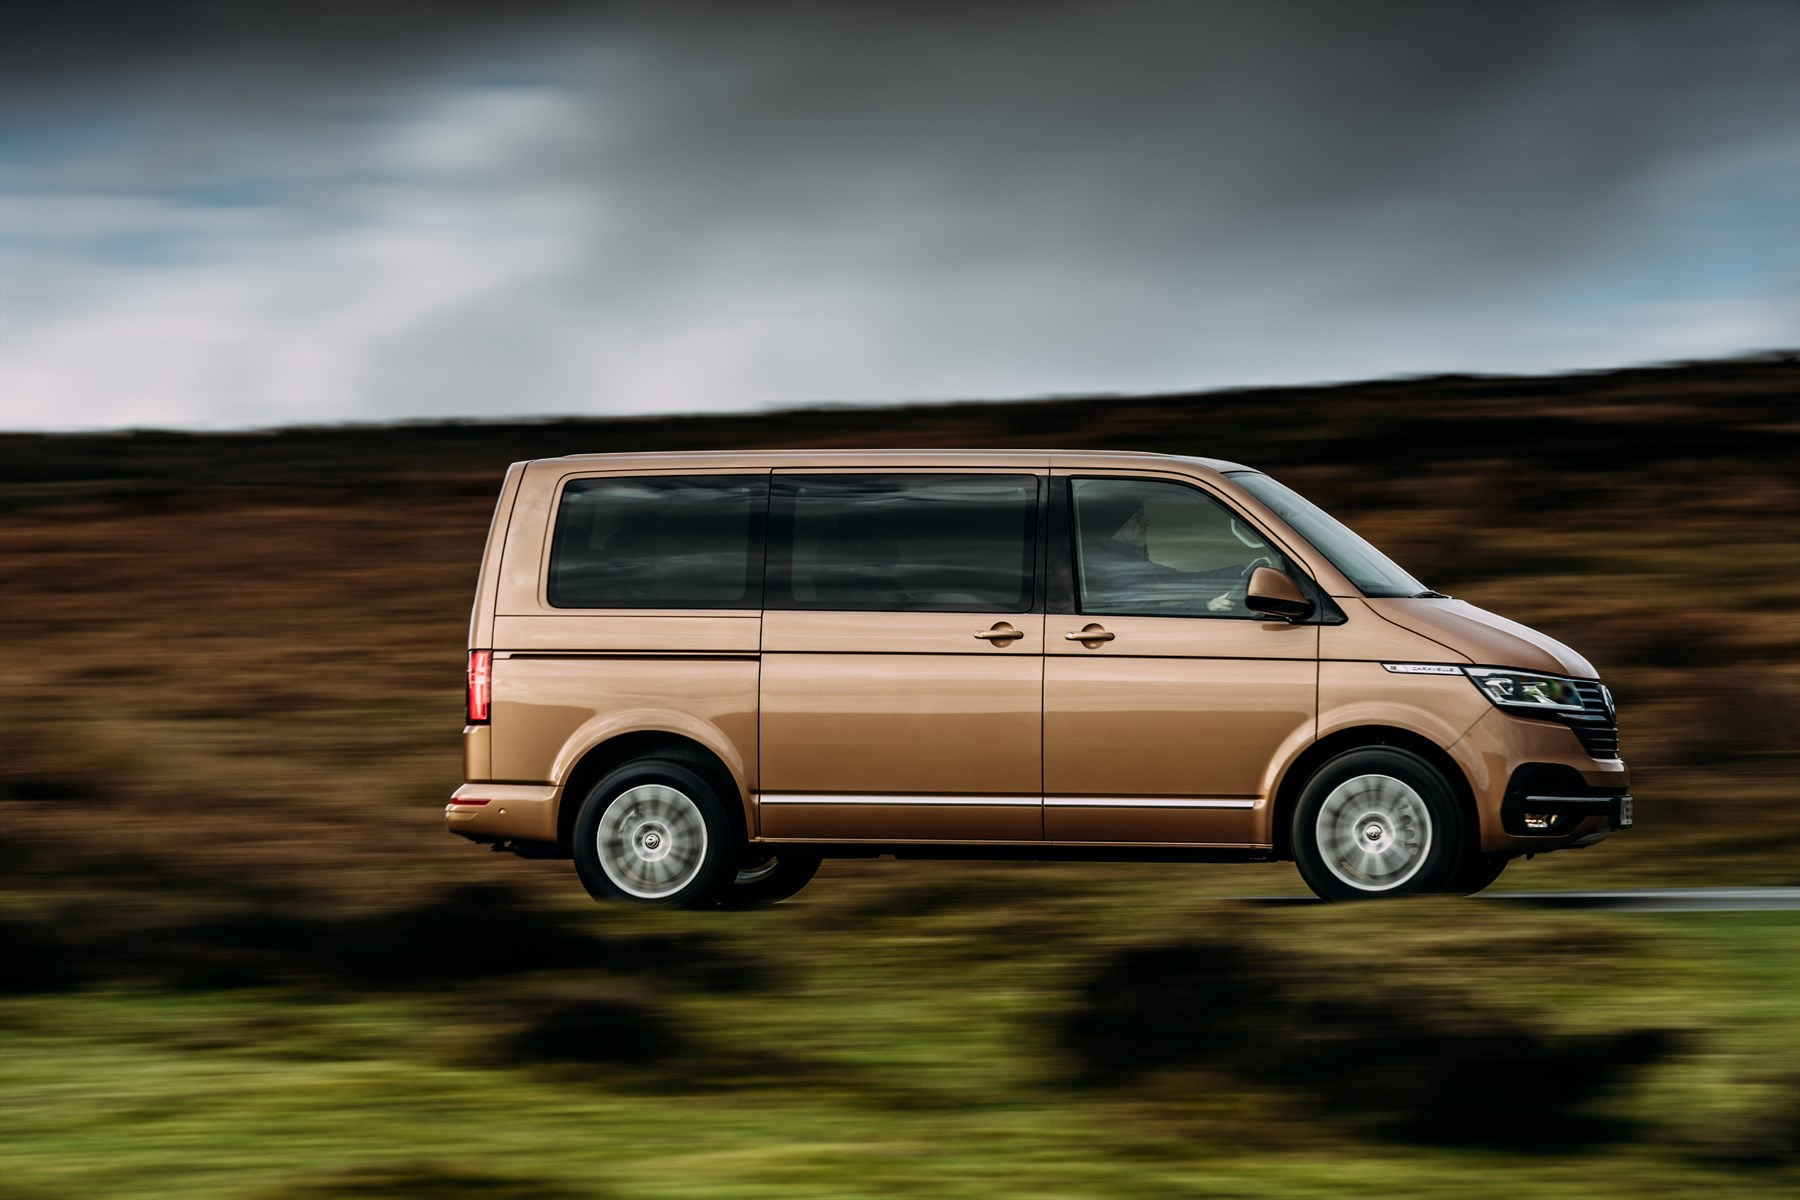 The sixth generation Volkswagen Transporter range gets a facelift